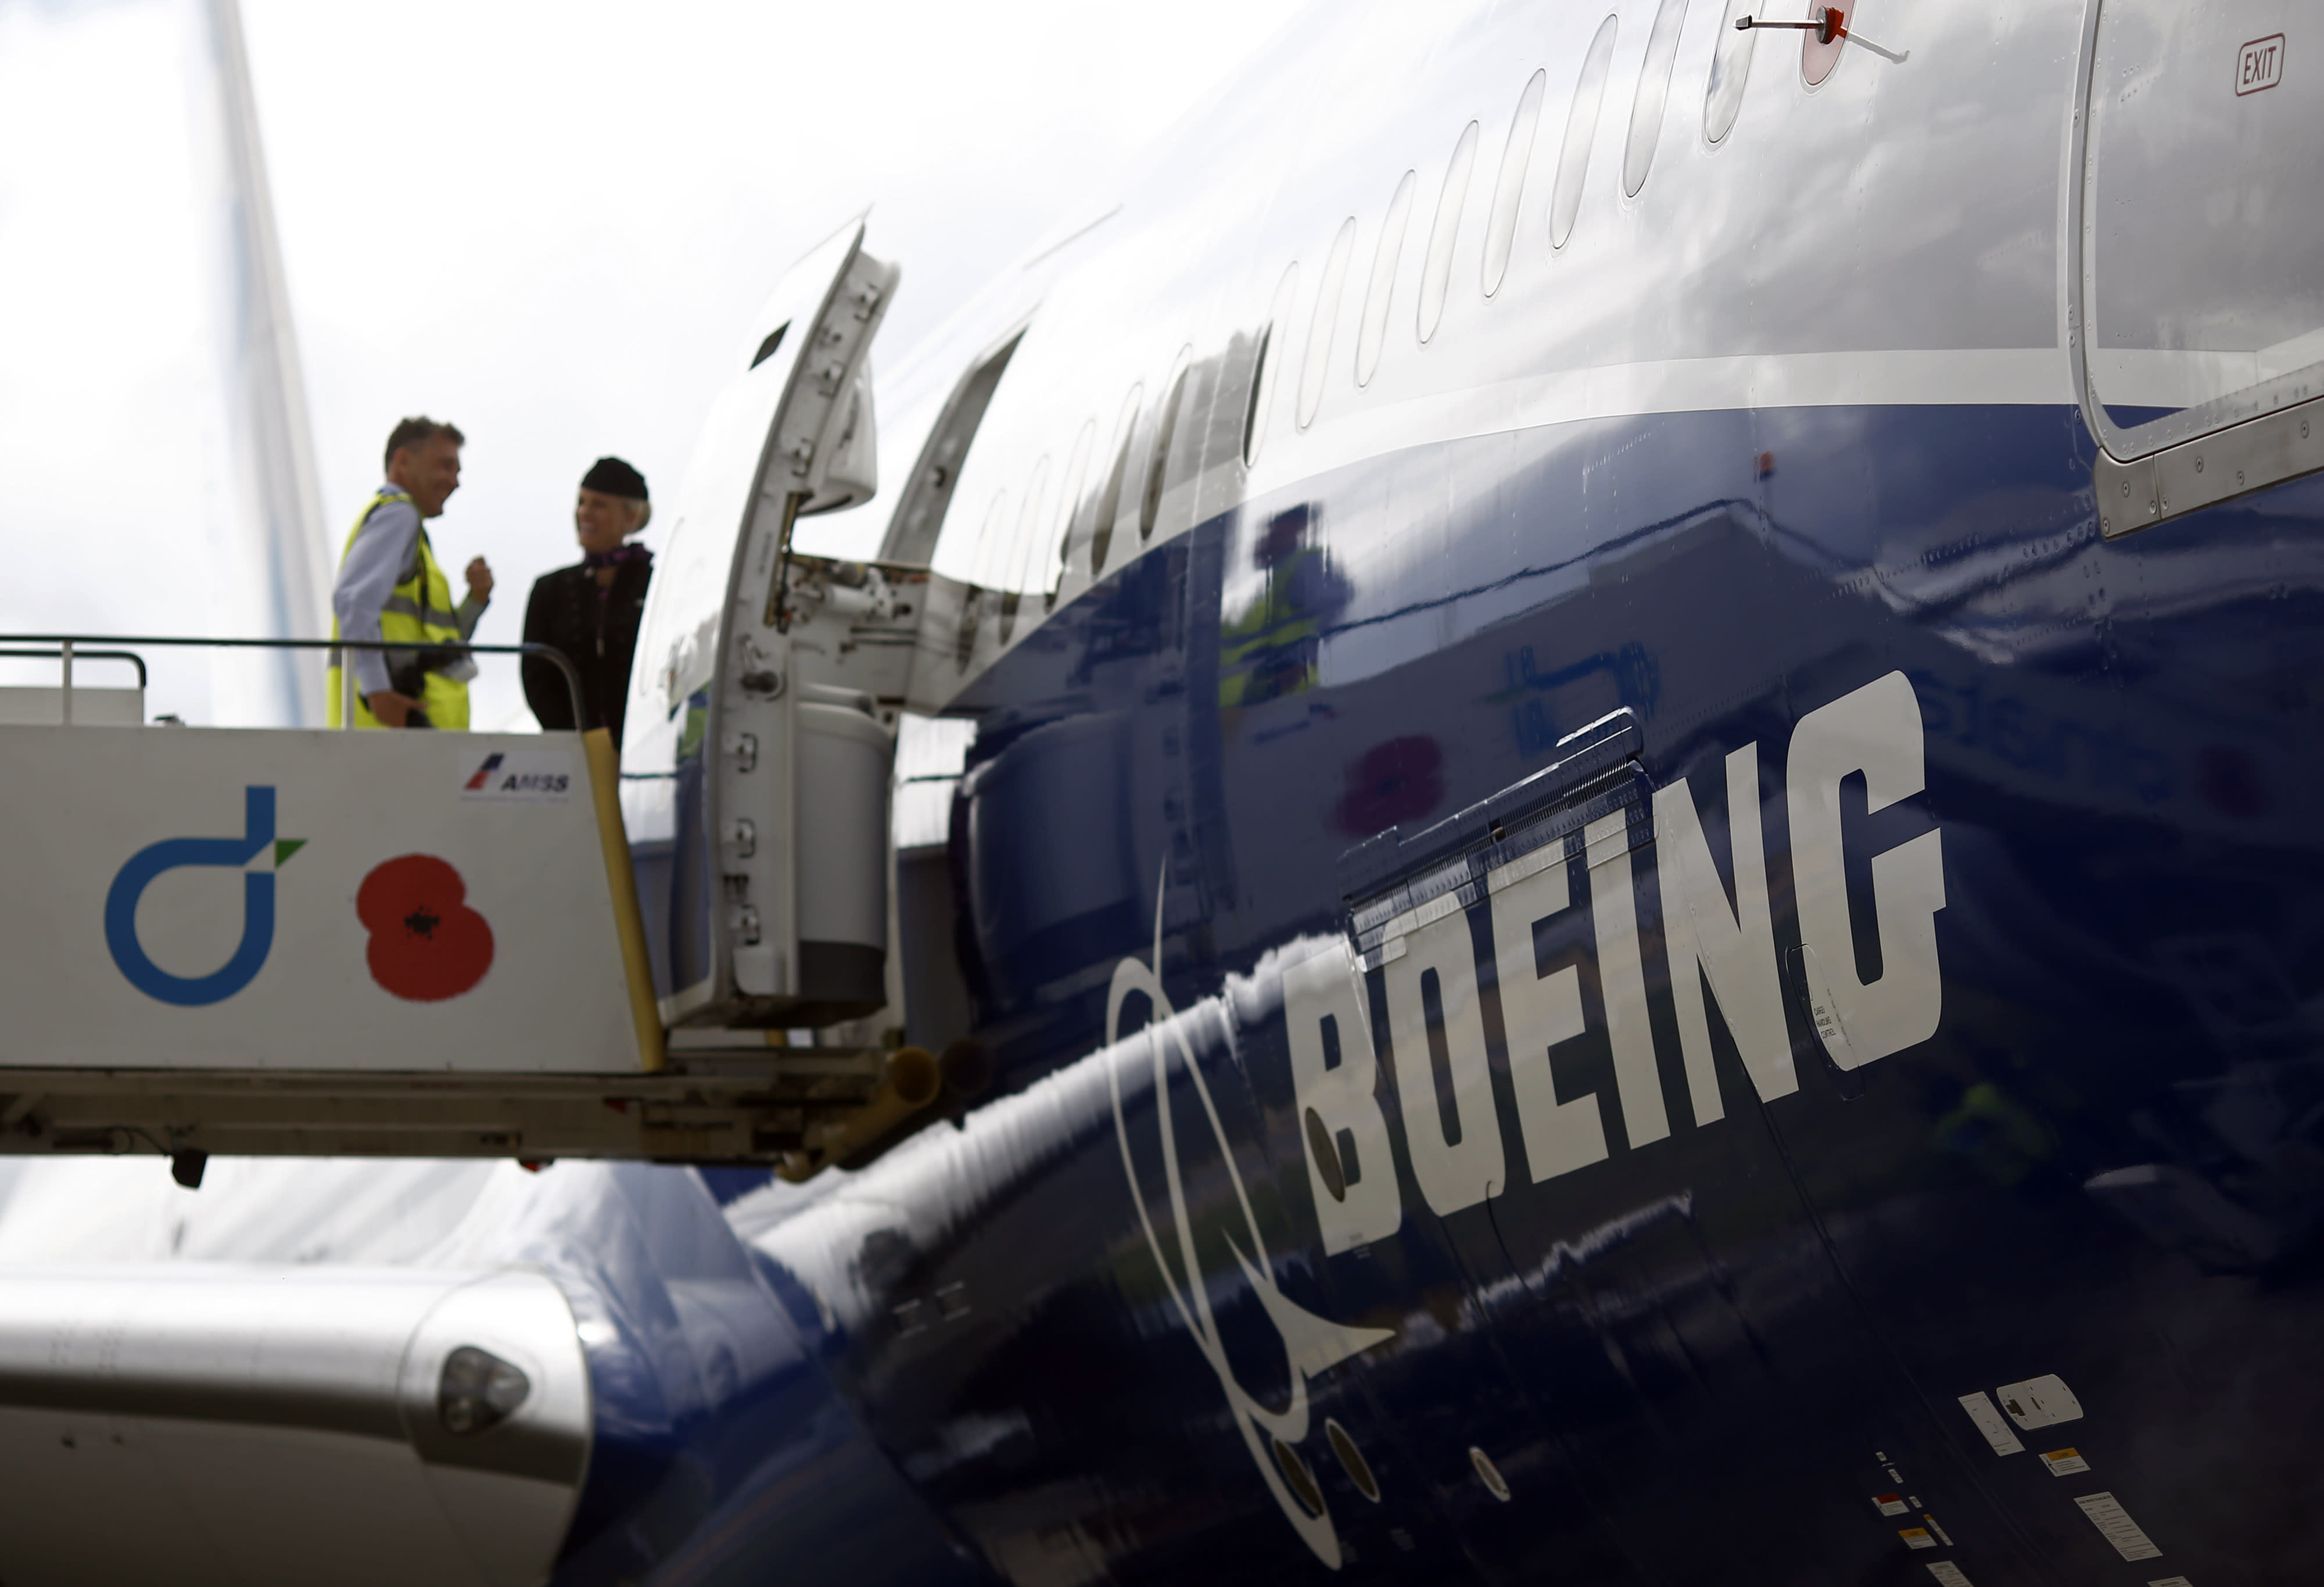 U.S. House lawmakers seek Boeing, FAA records after production problems